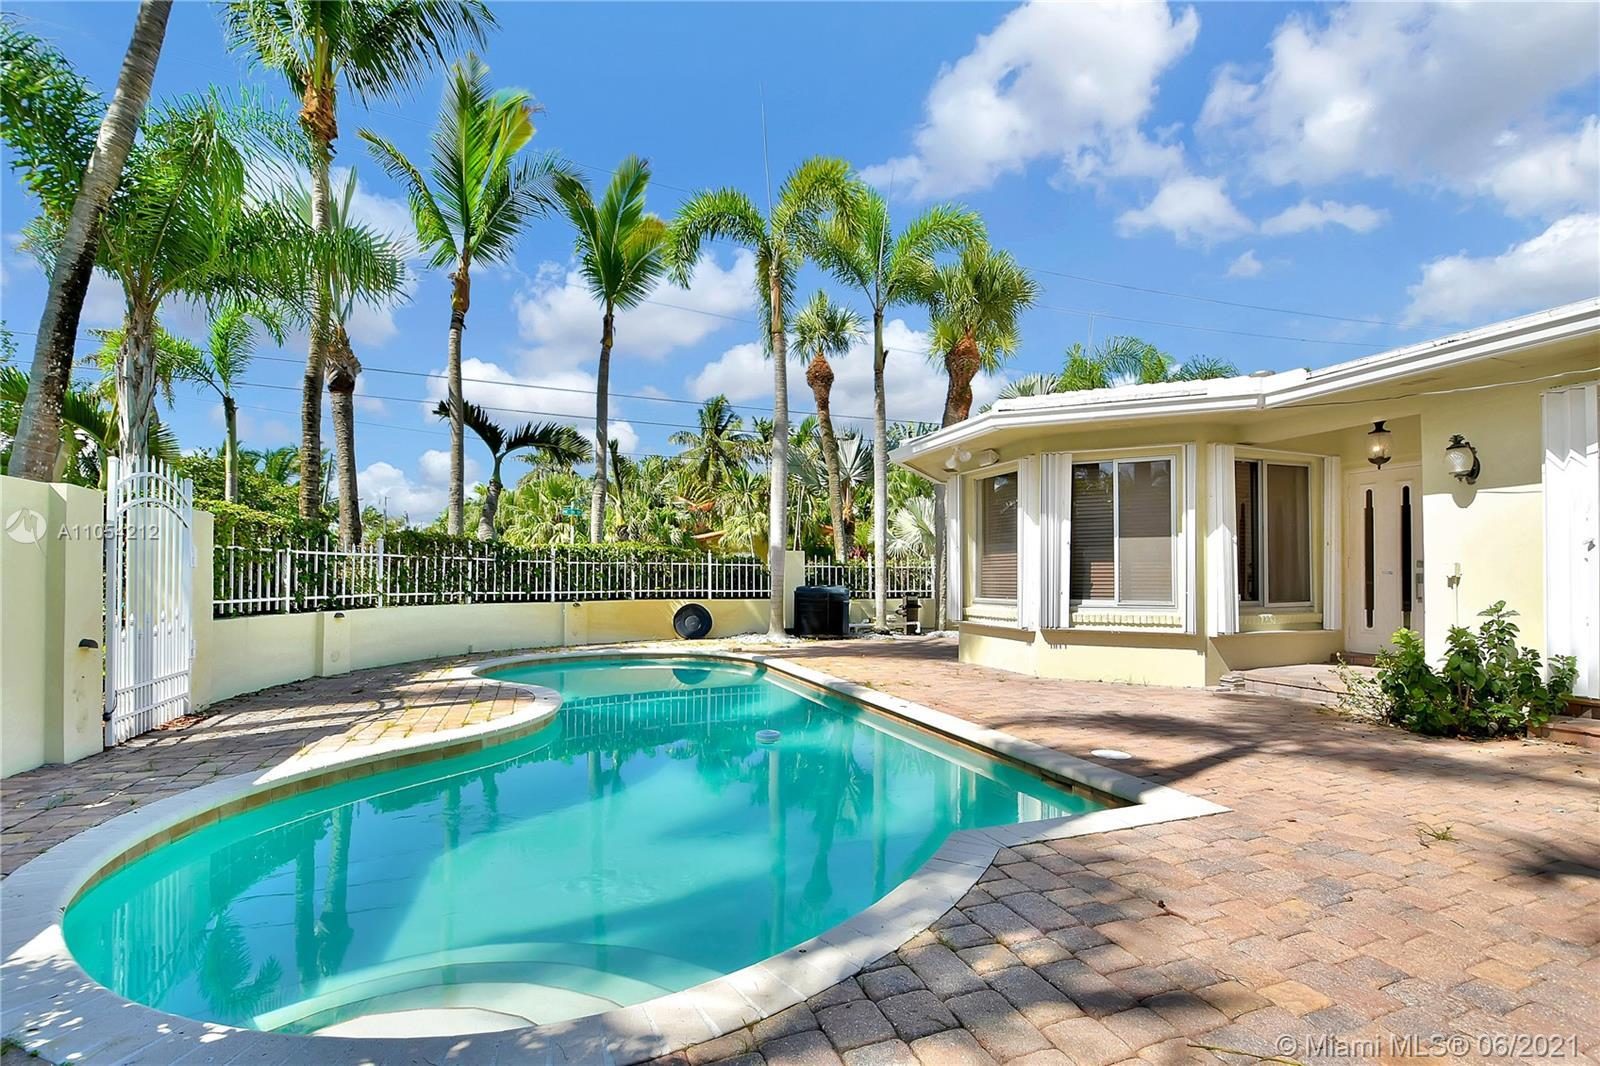 Charming beach home with lush landscaping, spacious outdoor area and pool on a private corner lot, j